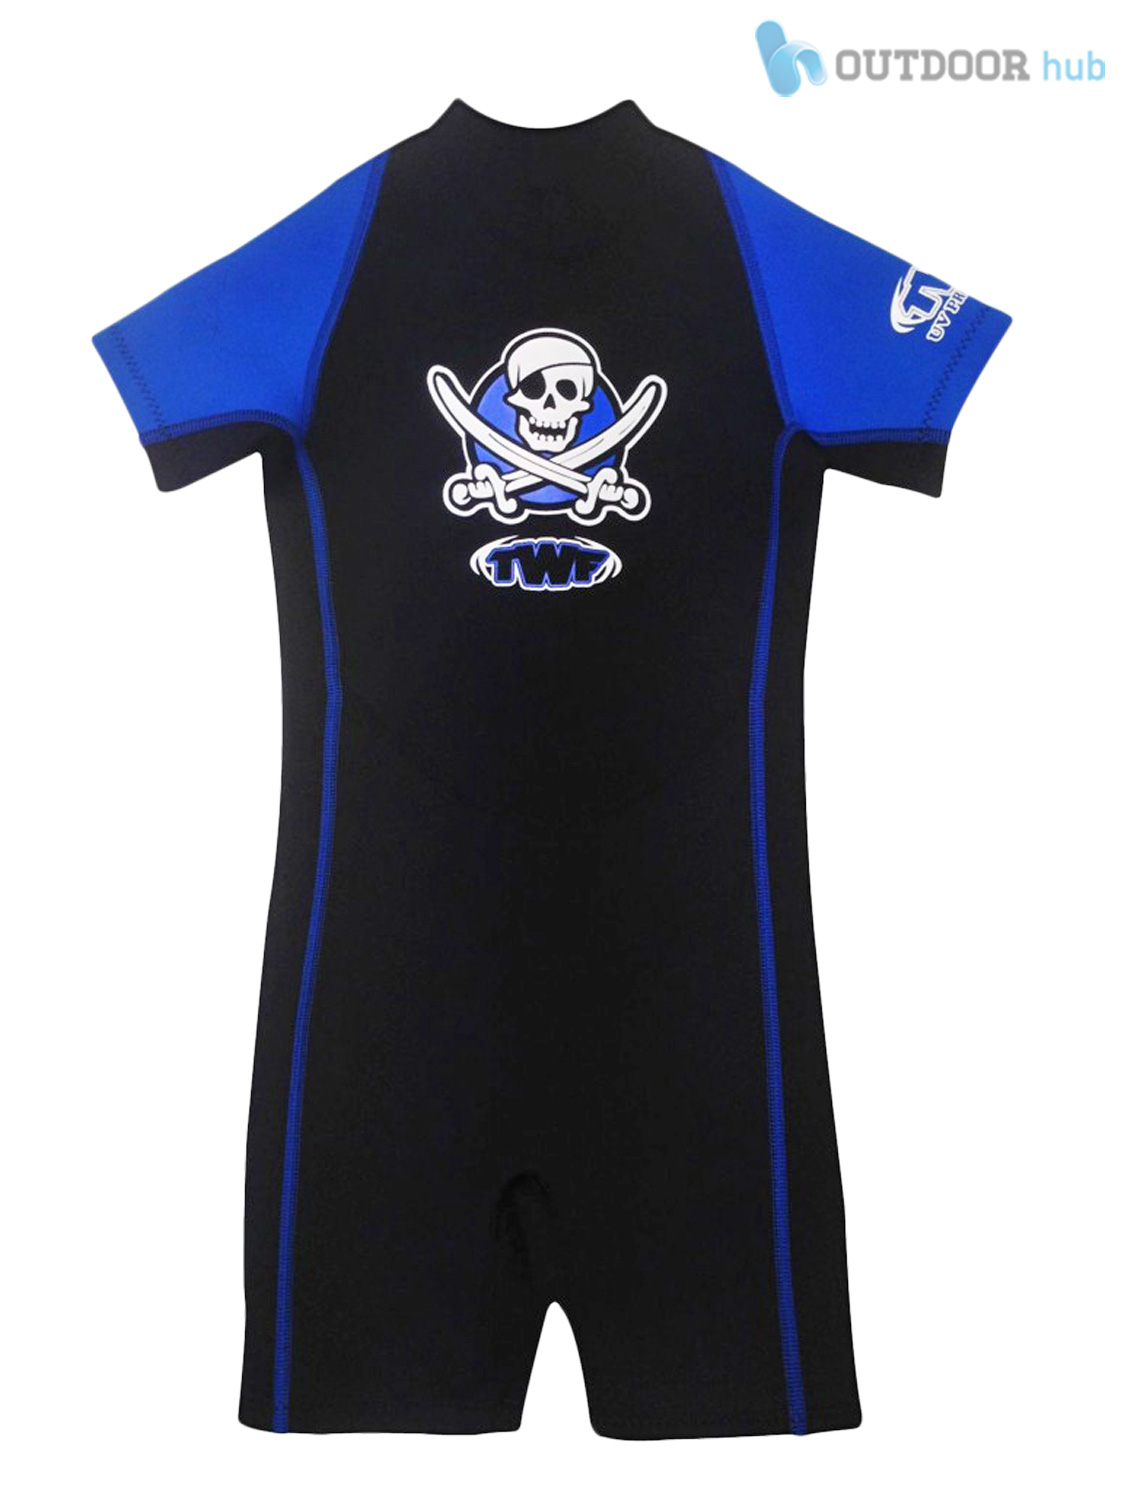 TWF-2mm-Kids-Shortie-Wetsuit-Childs-Shorty-Boys-Girls-Beach-Swim-Baby-Toddler thumbnail 8